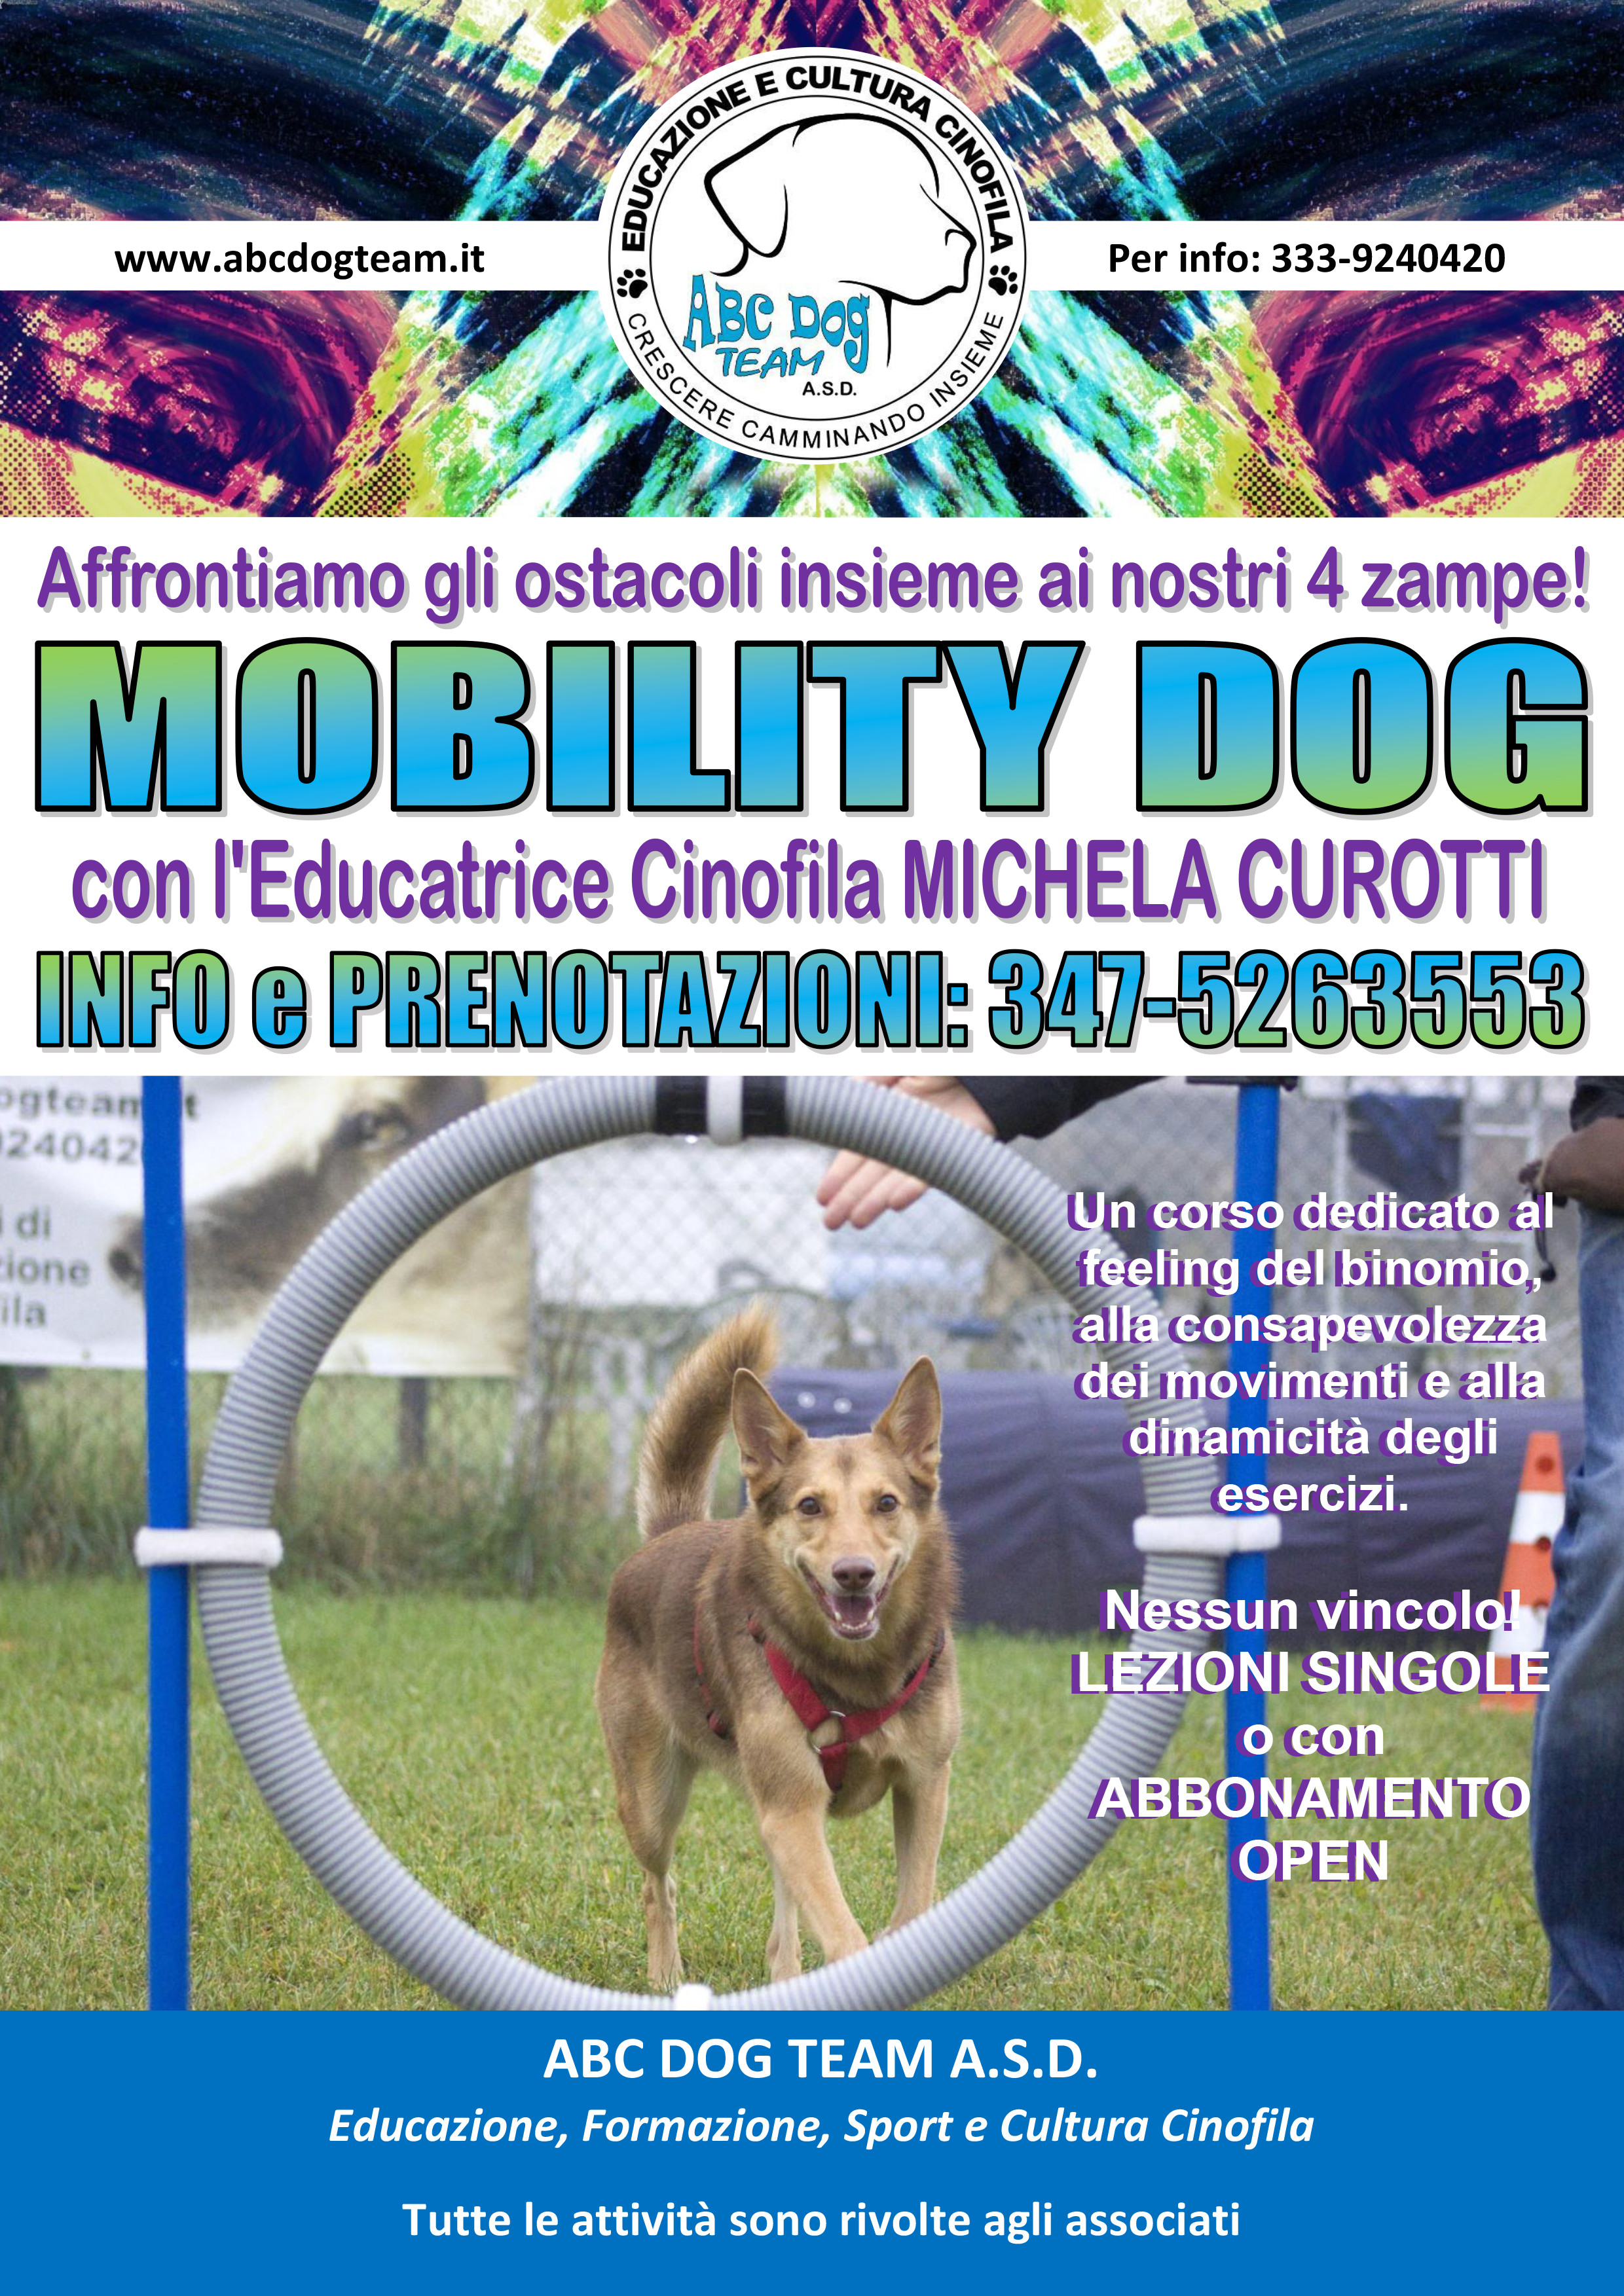 Abc Dog Team MOBILITY DOG Monza